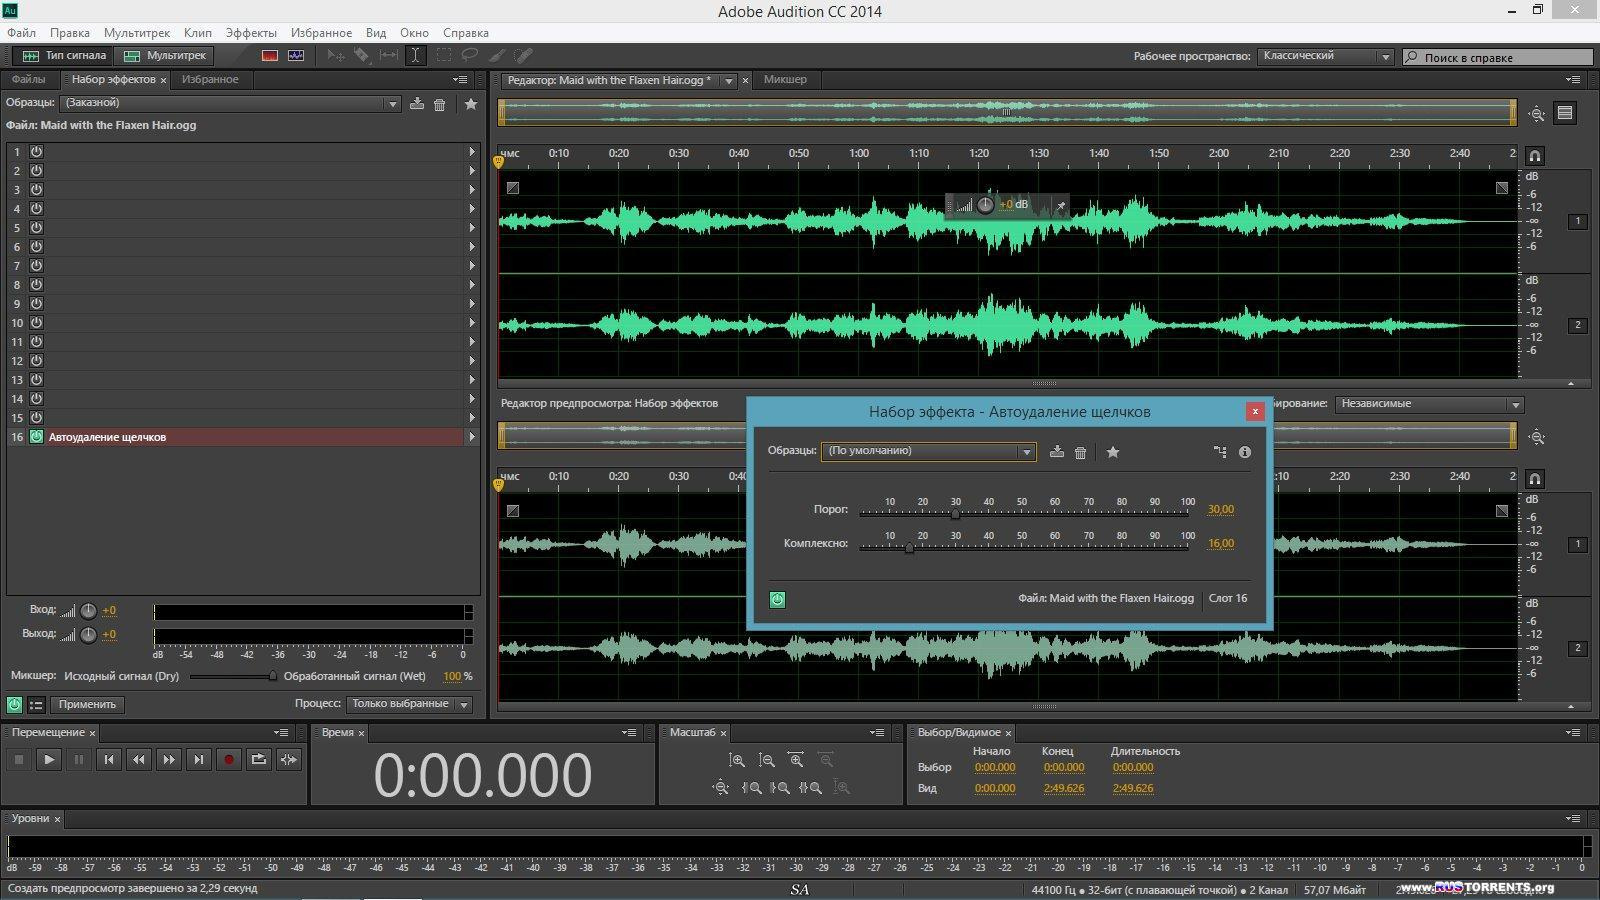 Adobe Audition CC 2014.0.1 Build 7.0.1.5